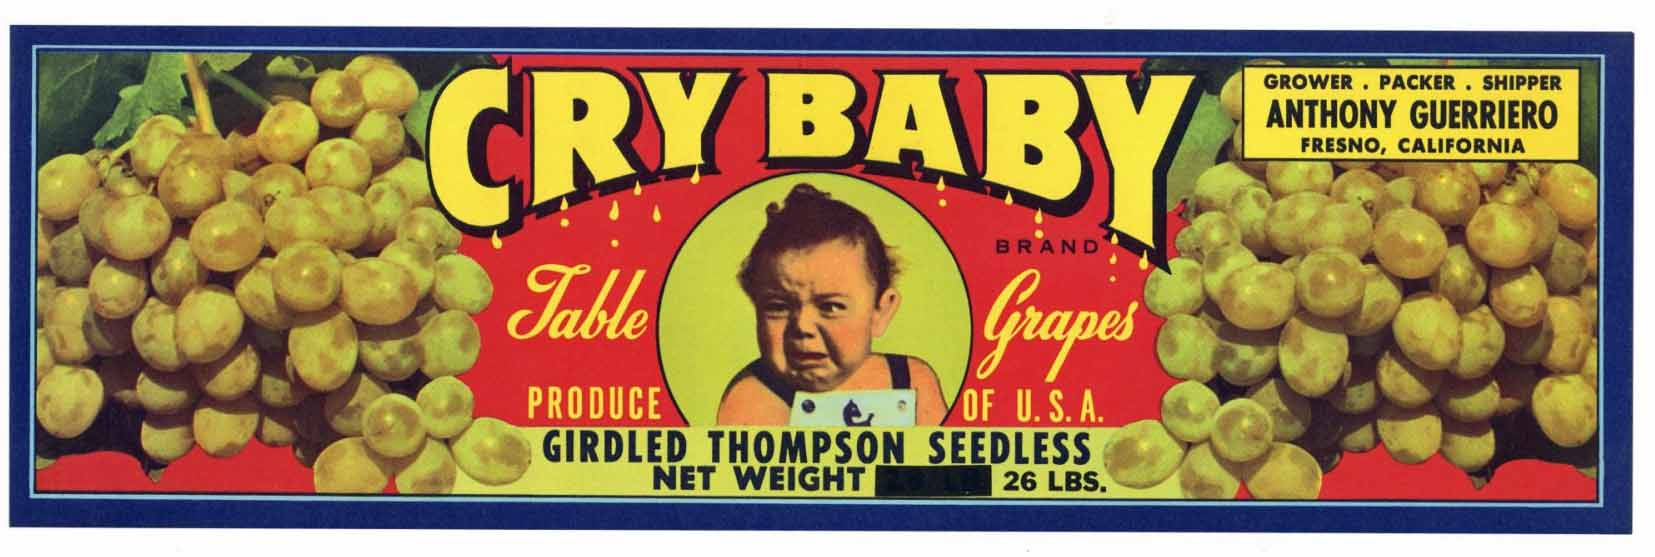 CRY BABY Brand Vintage Grape Crate Label (LL1070)